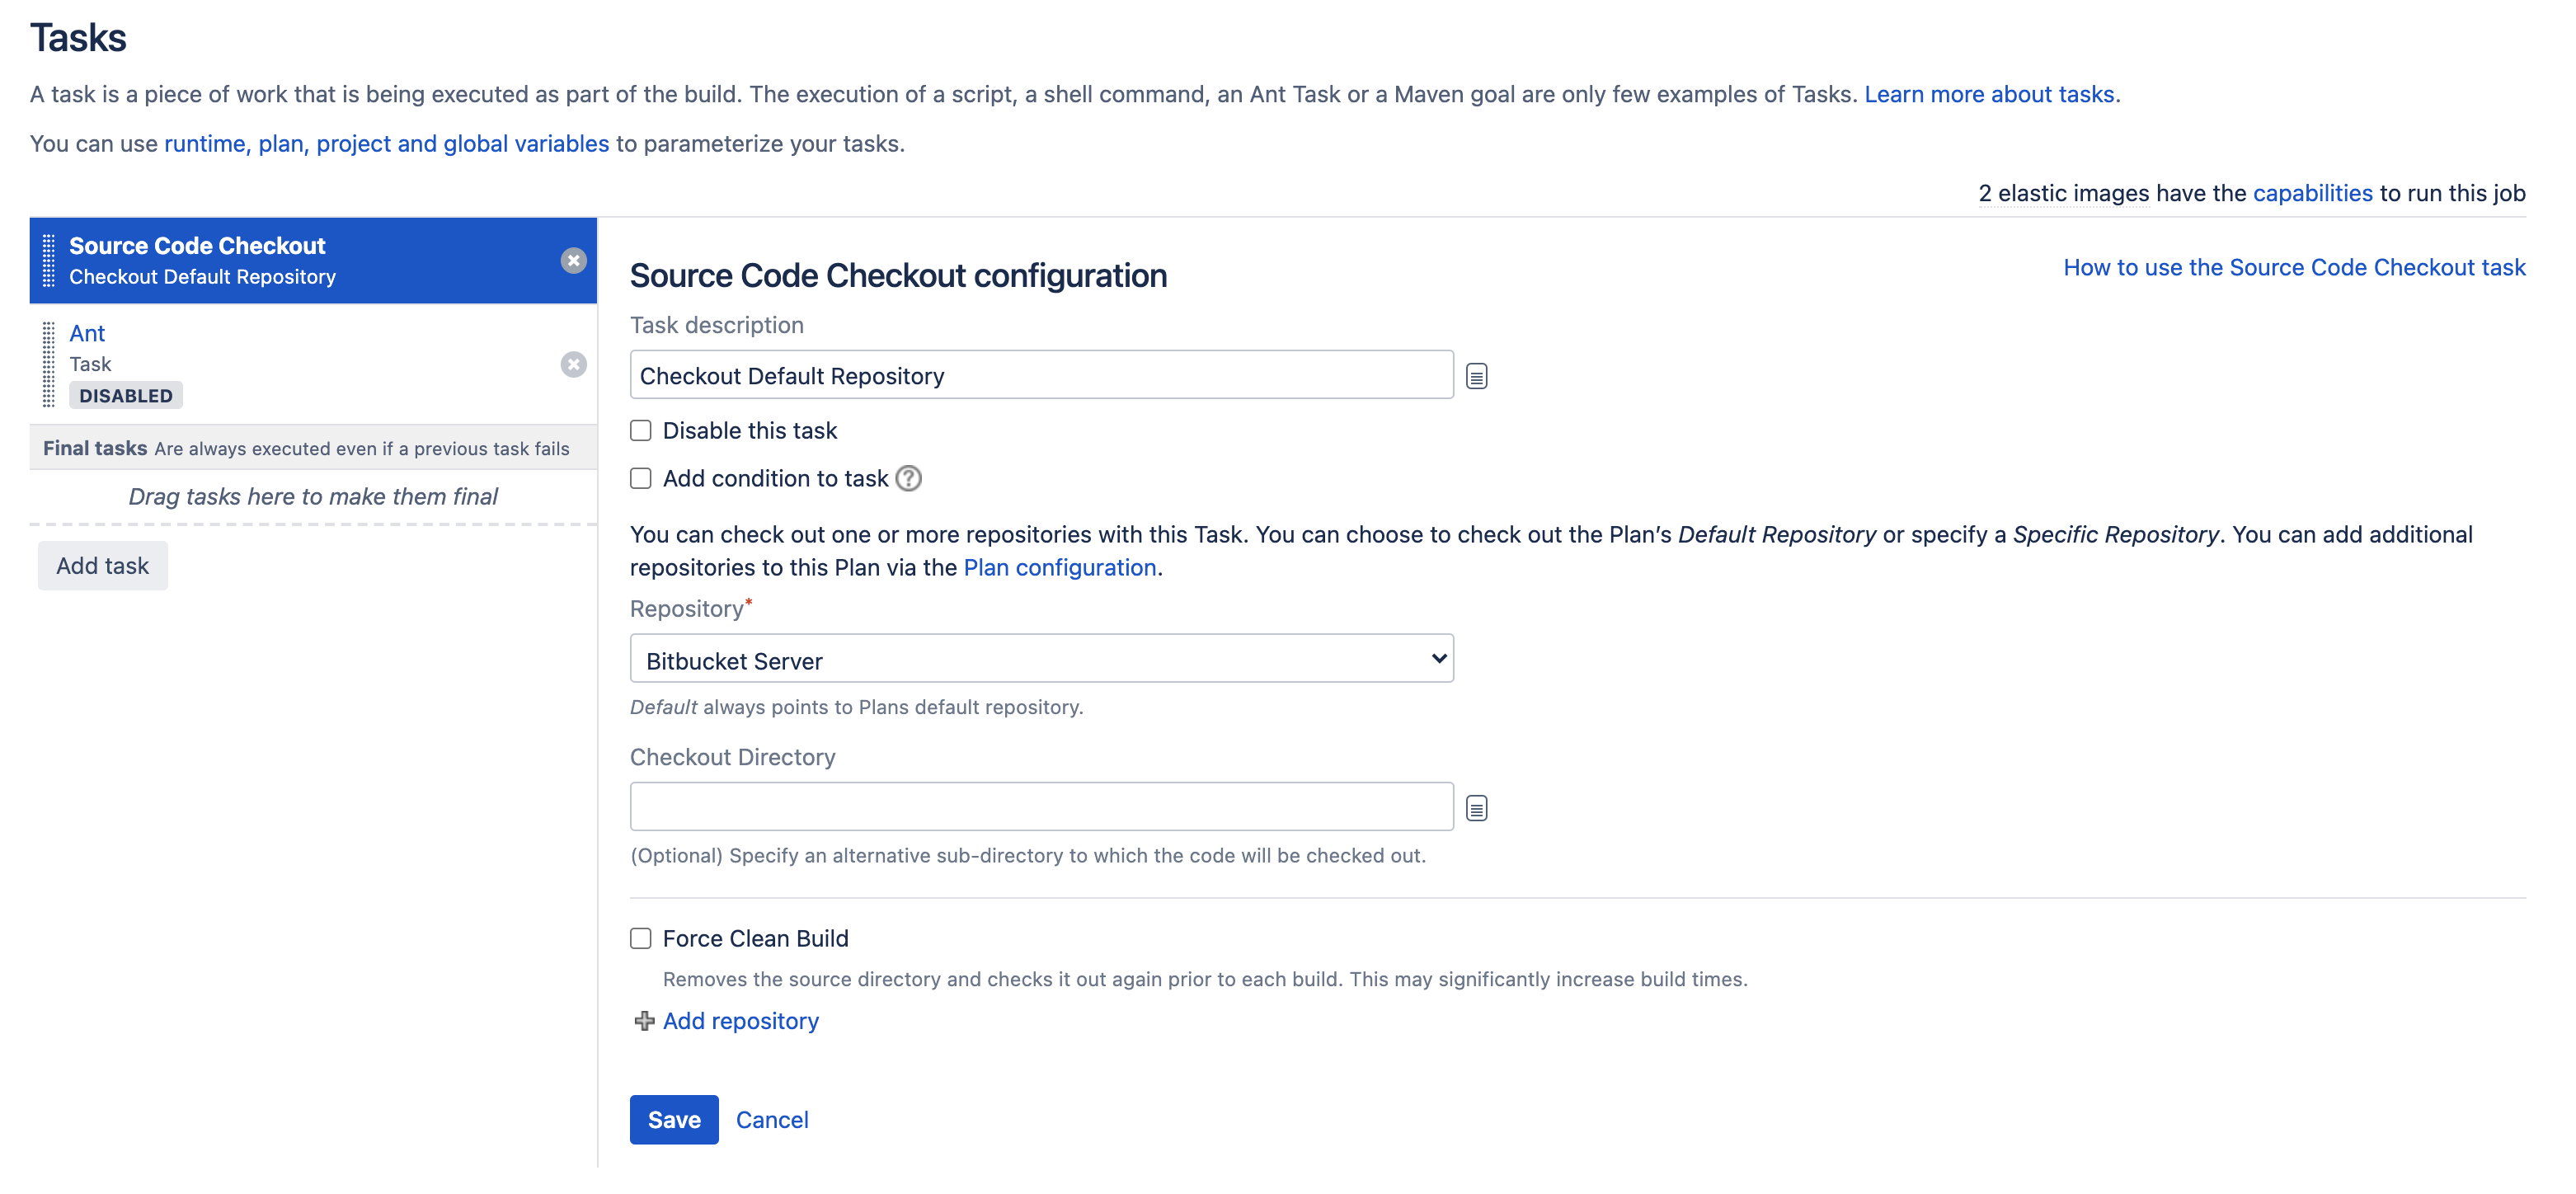 Source Code Checkout task configuration